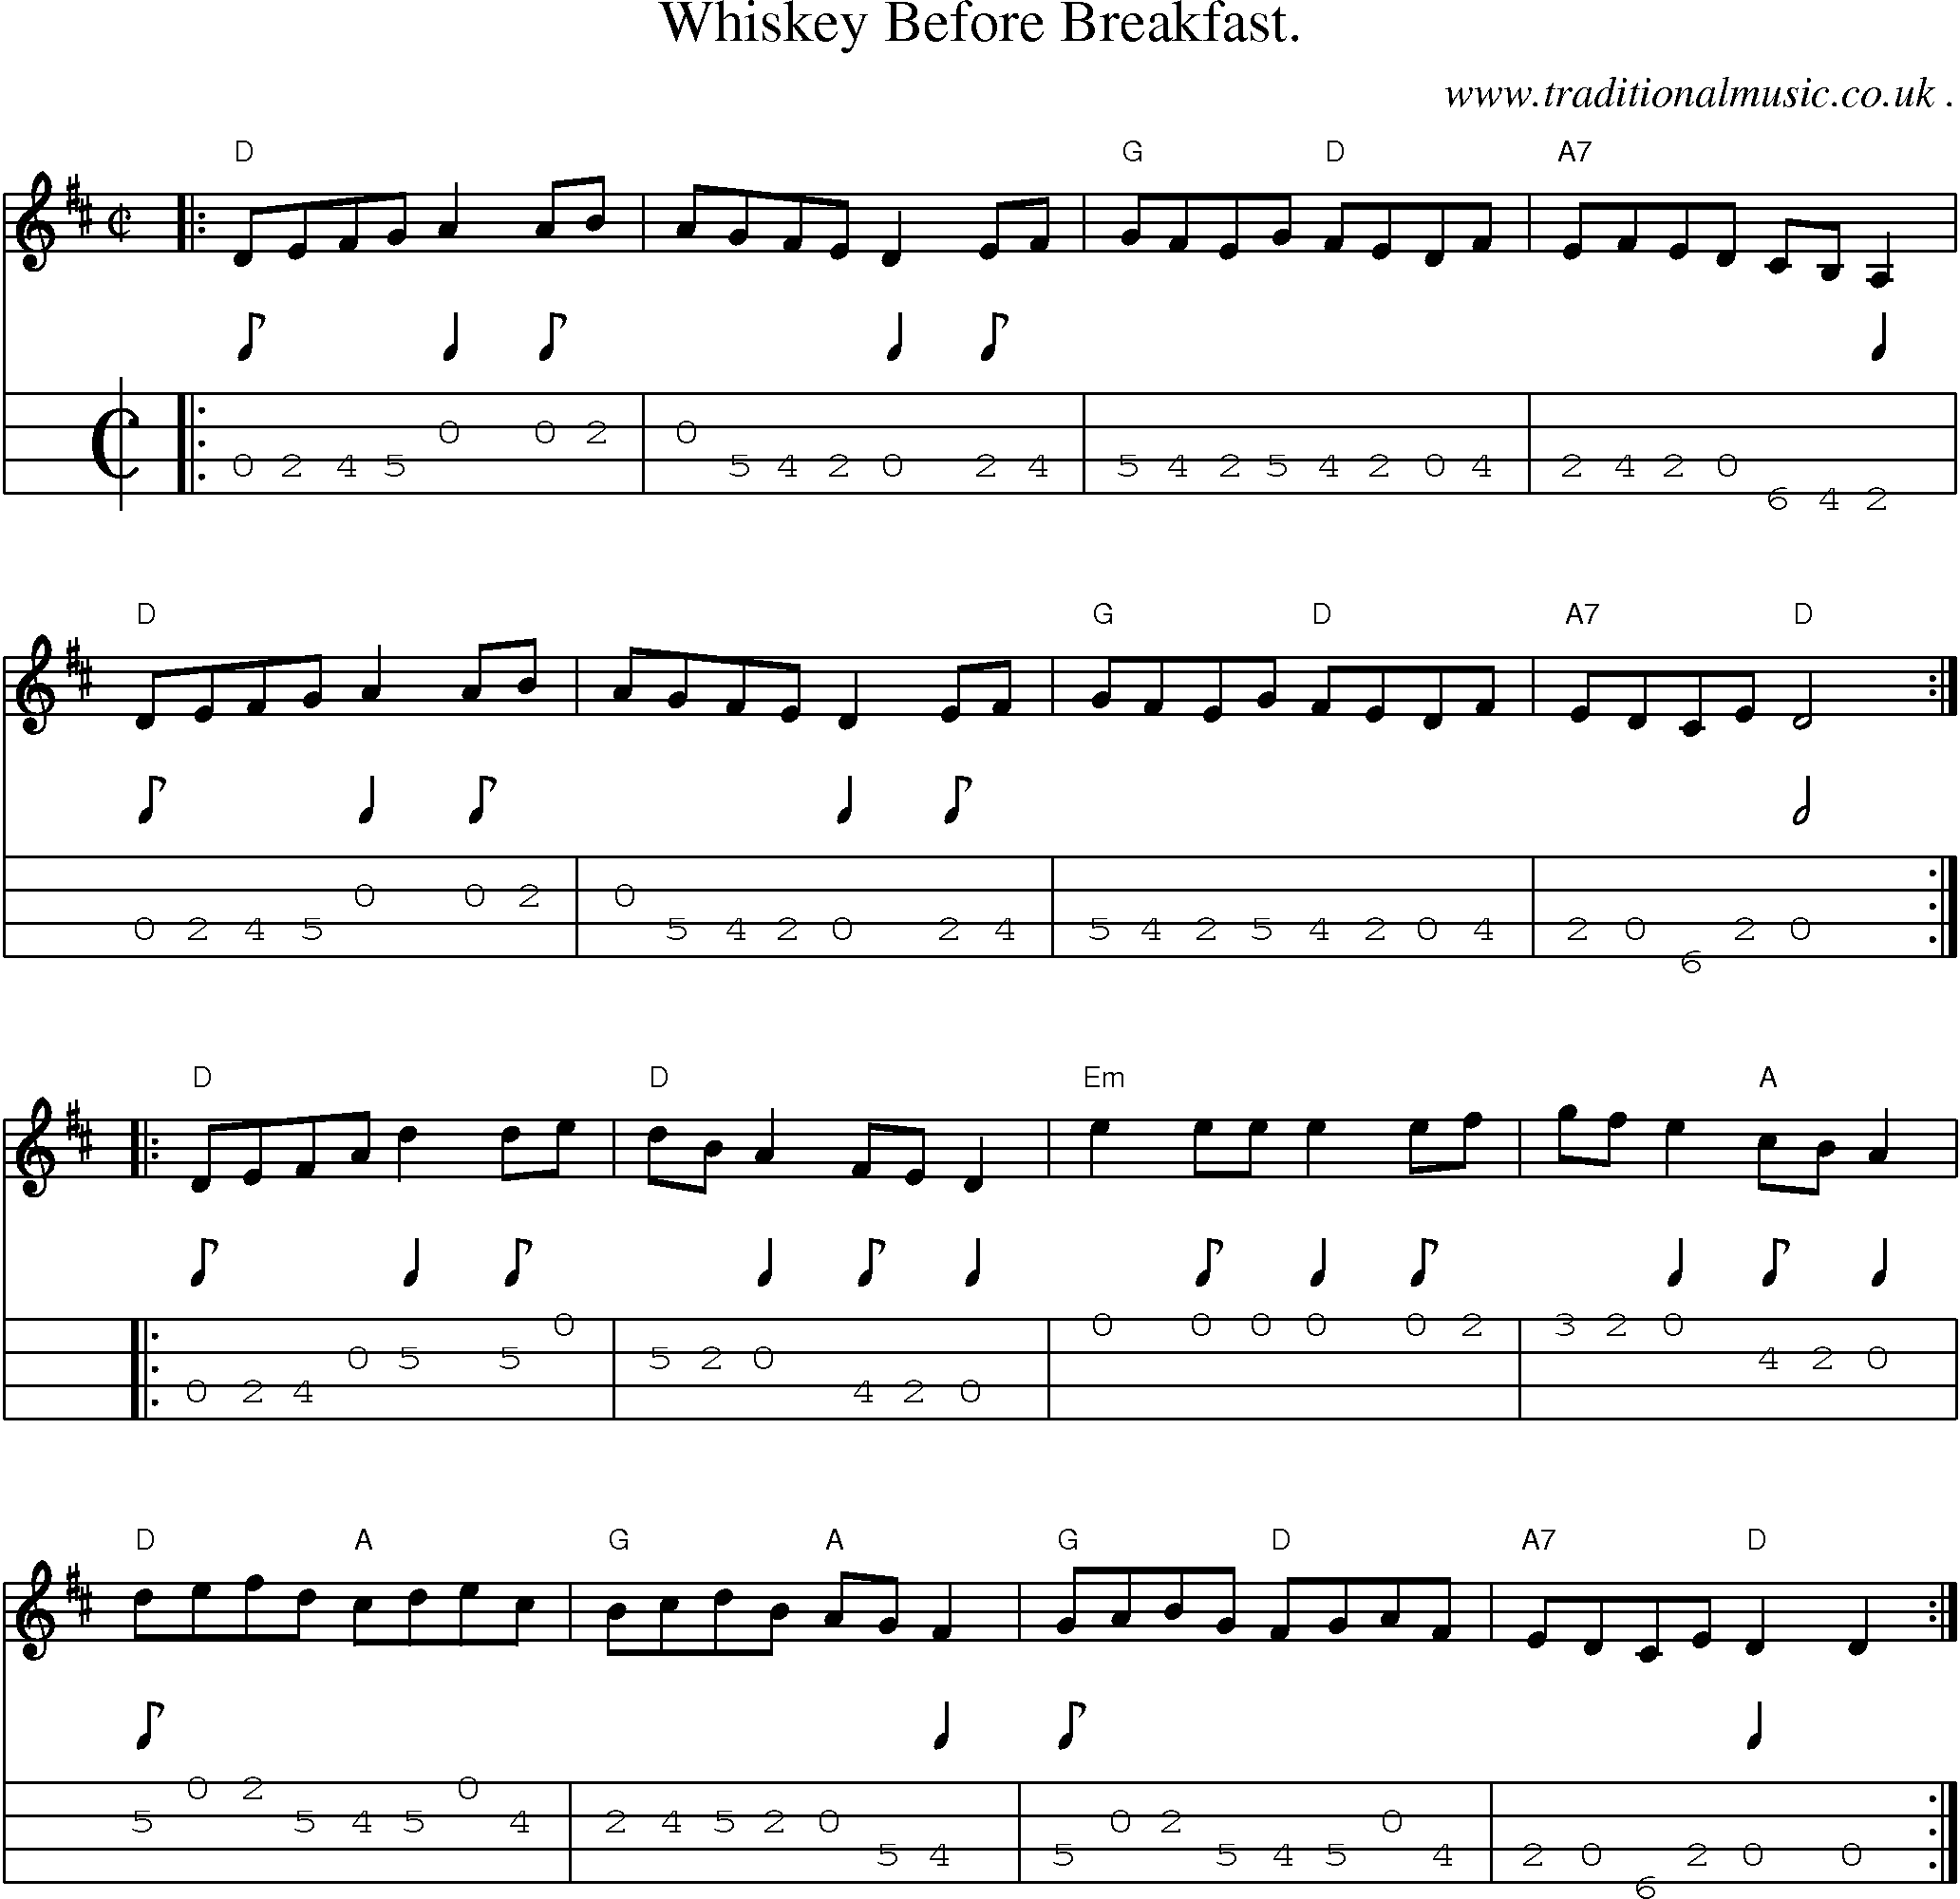 American Old-time music, Scores and Tabs for Mandolin - Whiskey Before Breakfast